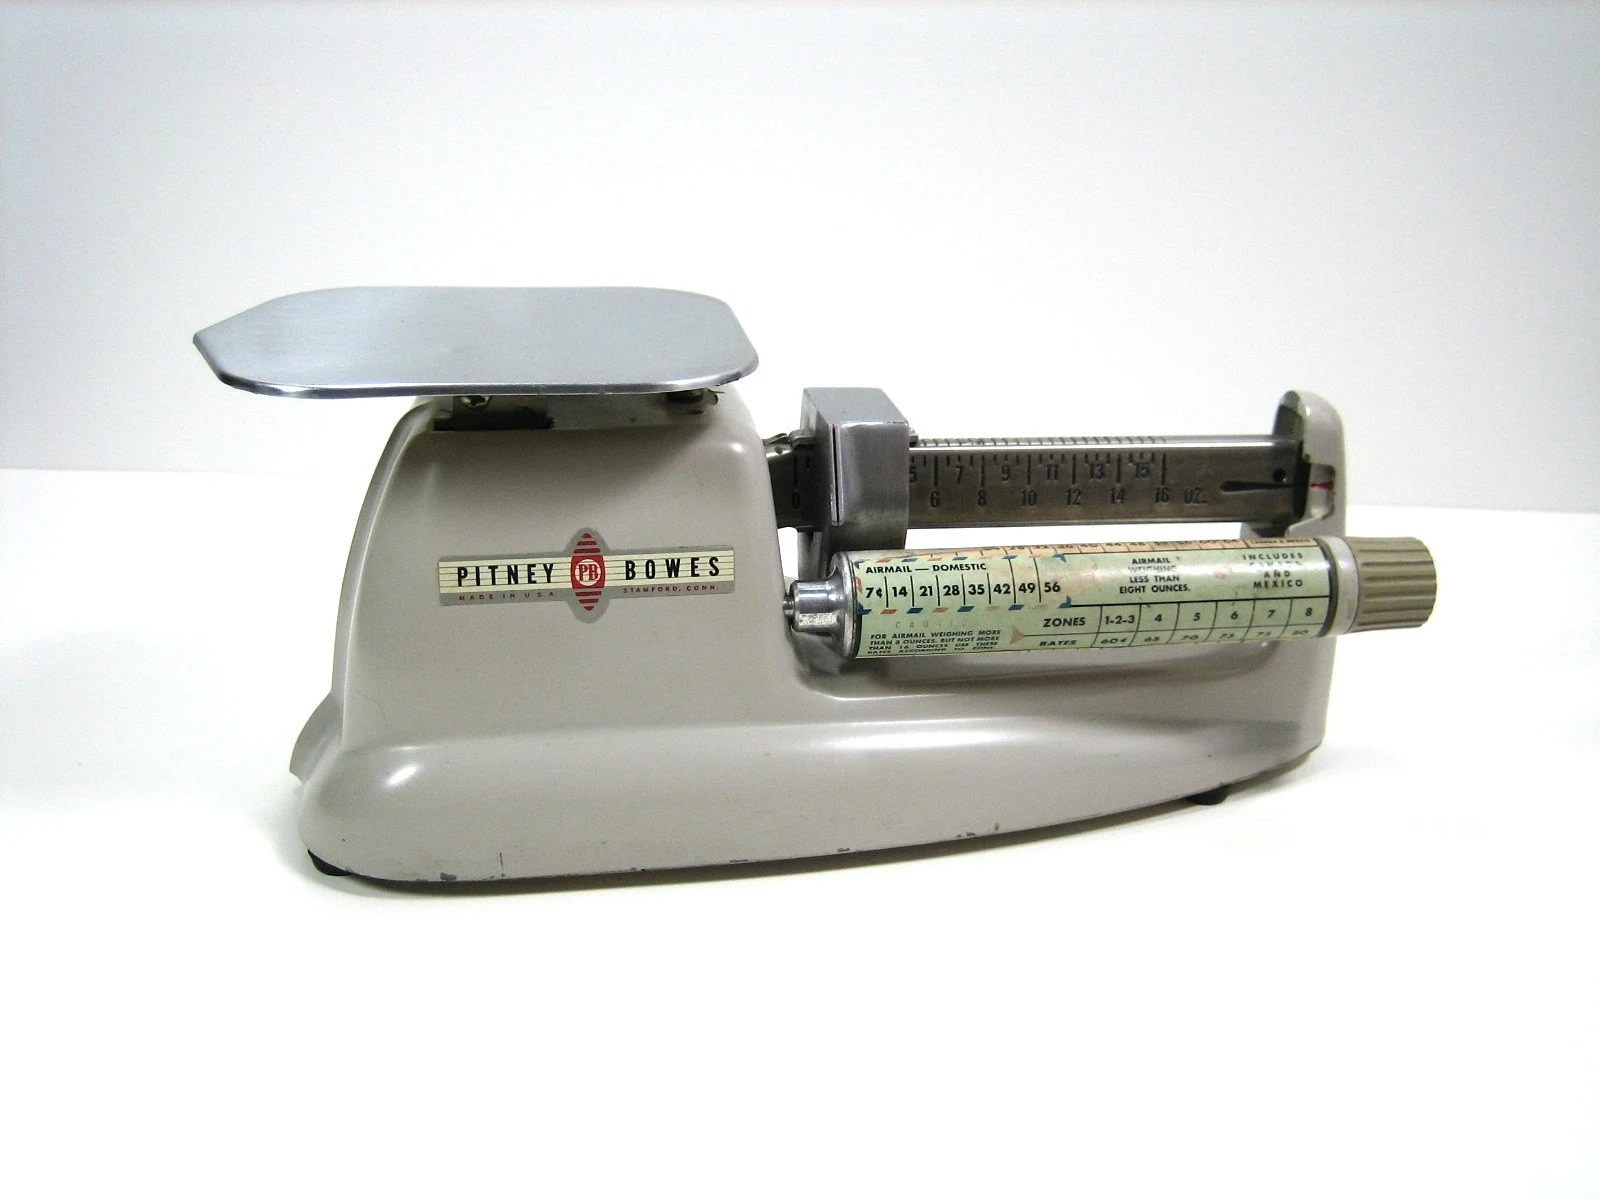 Vintage Industrial Pitney Bowes Postal Scale